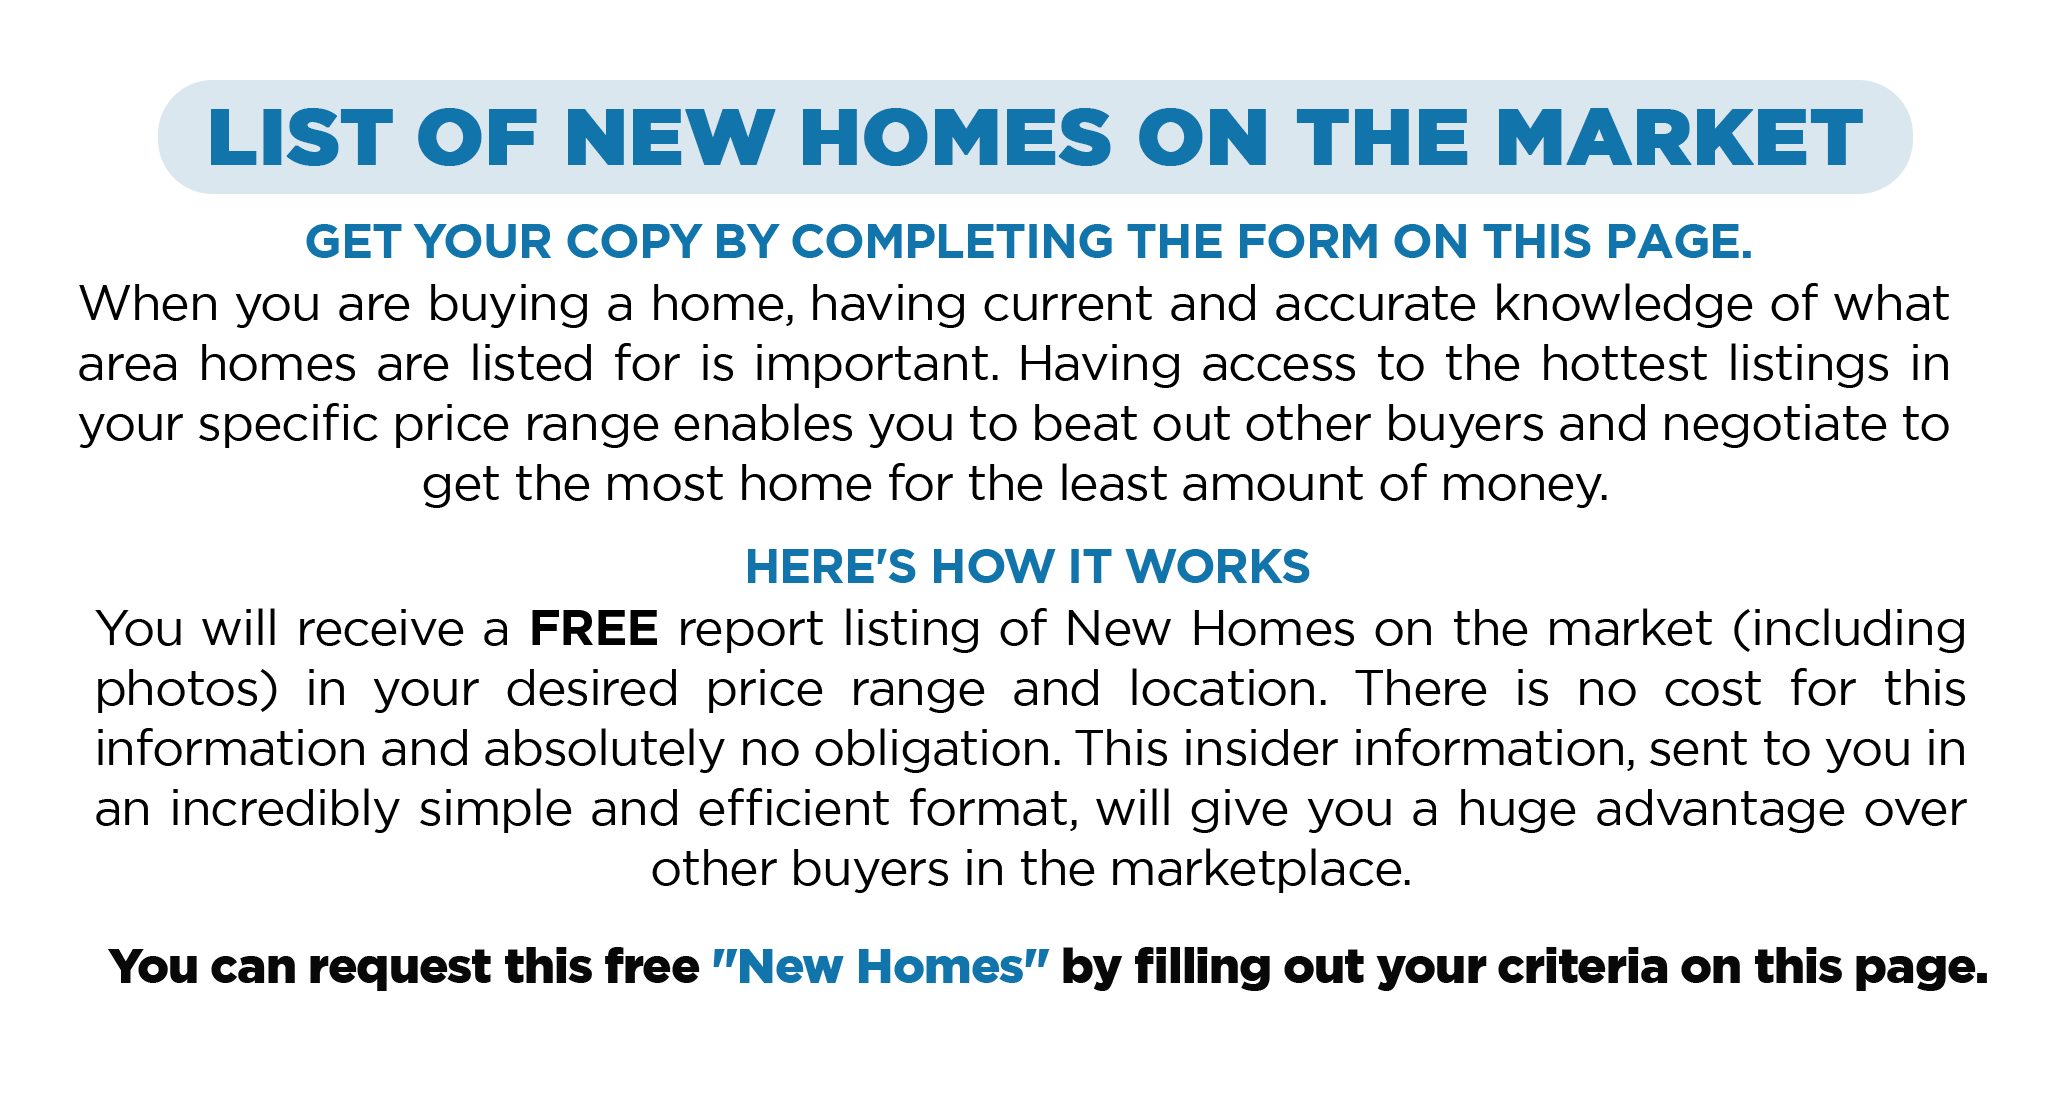 LIST OF NEW HOMES TEASER TEXT.png